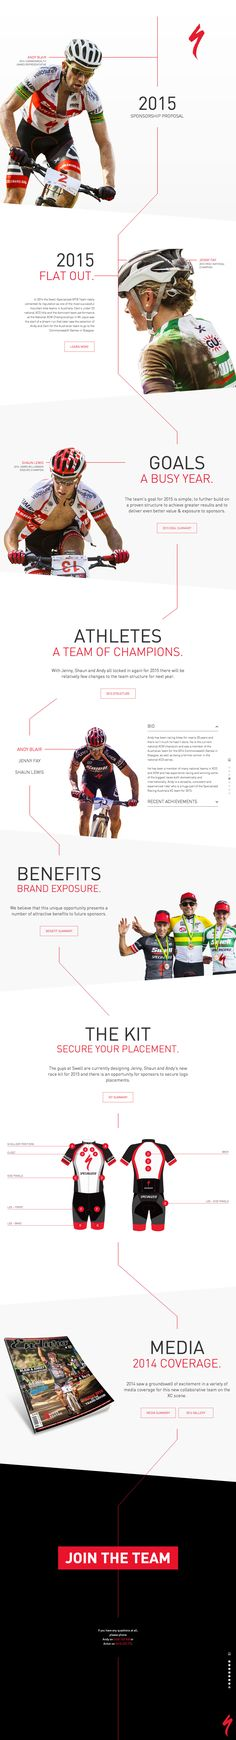 Sponsorship proposal in a smart one page website for 'Swell Specialized' mountain bike team. There is a nice clean and clear layout throughout the long one pager. Also really like that sponsorship kit placement infographic.